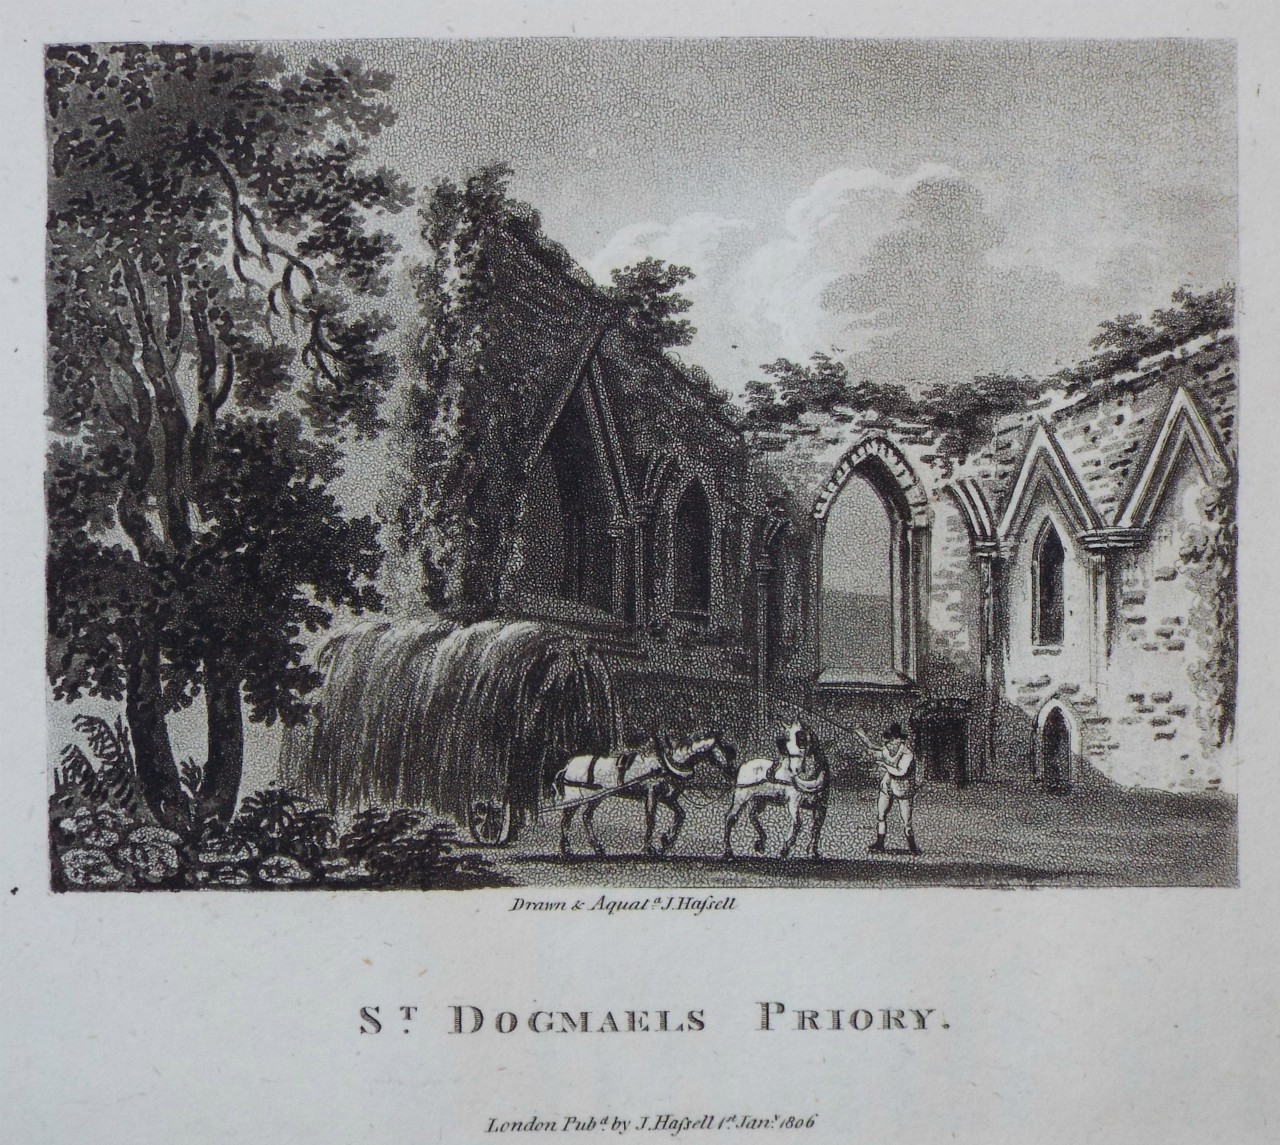 Aquatint - St. Dogmaels Priory - Hassell